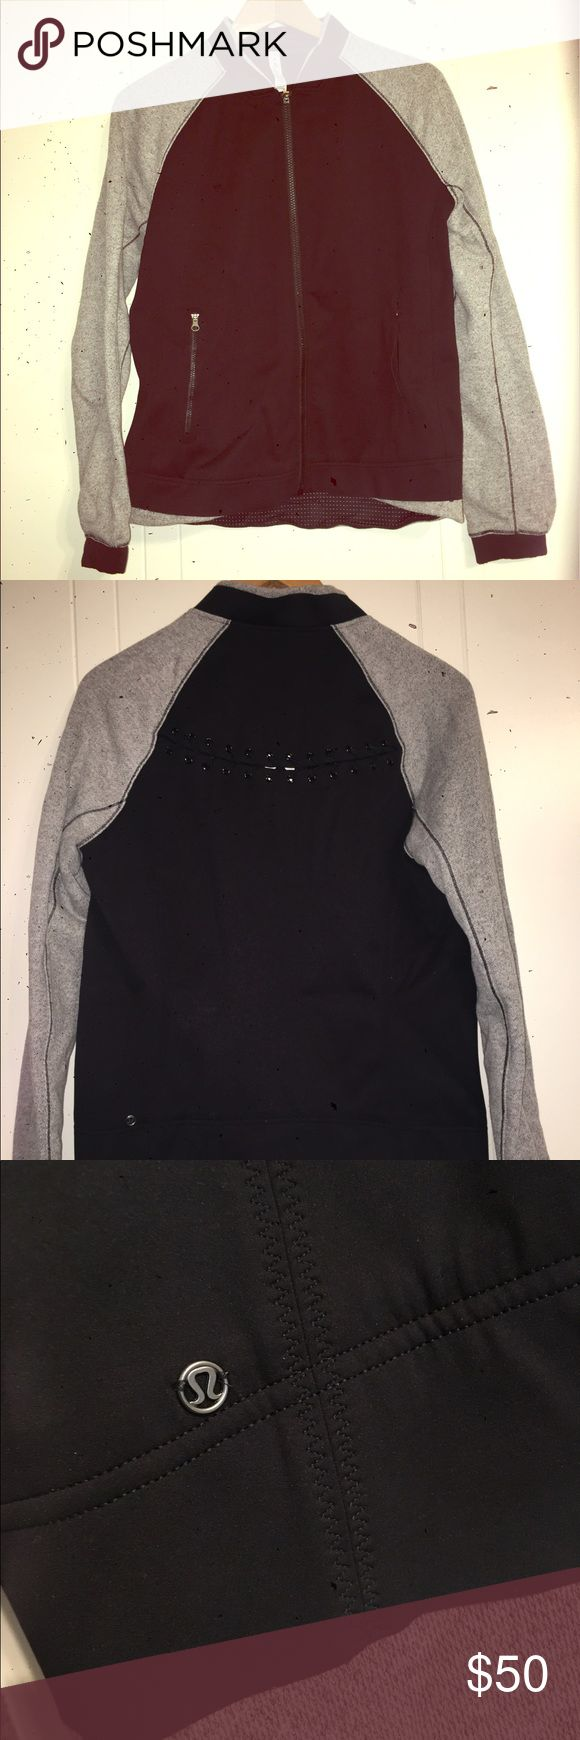 Lululemon black and gray zip up jacket! Black and grey tracksuit zip up jacket! Worn once! Beautiful crochet detailing on the back. Size 10. Black specs in photos are from broken phone- not actually on item!!! Make me an offer! 😃 lululemon athletica Tops Sweatshirts & Hoodies